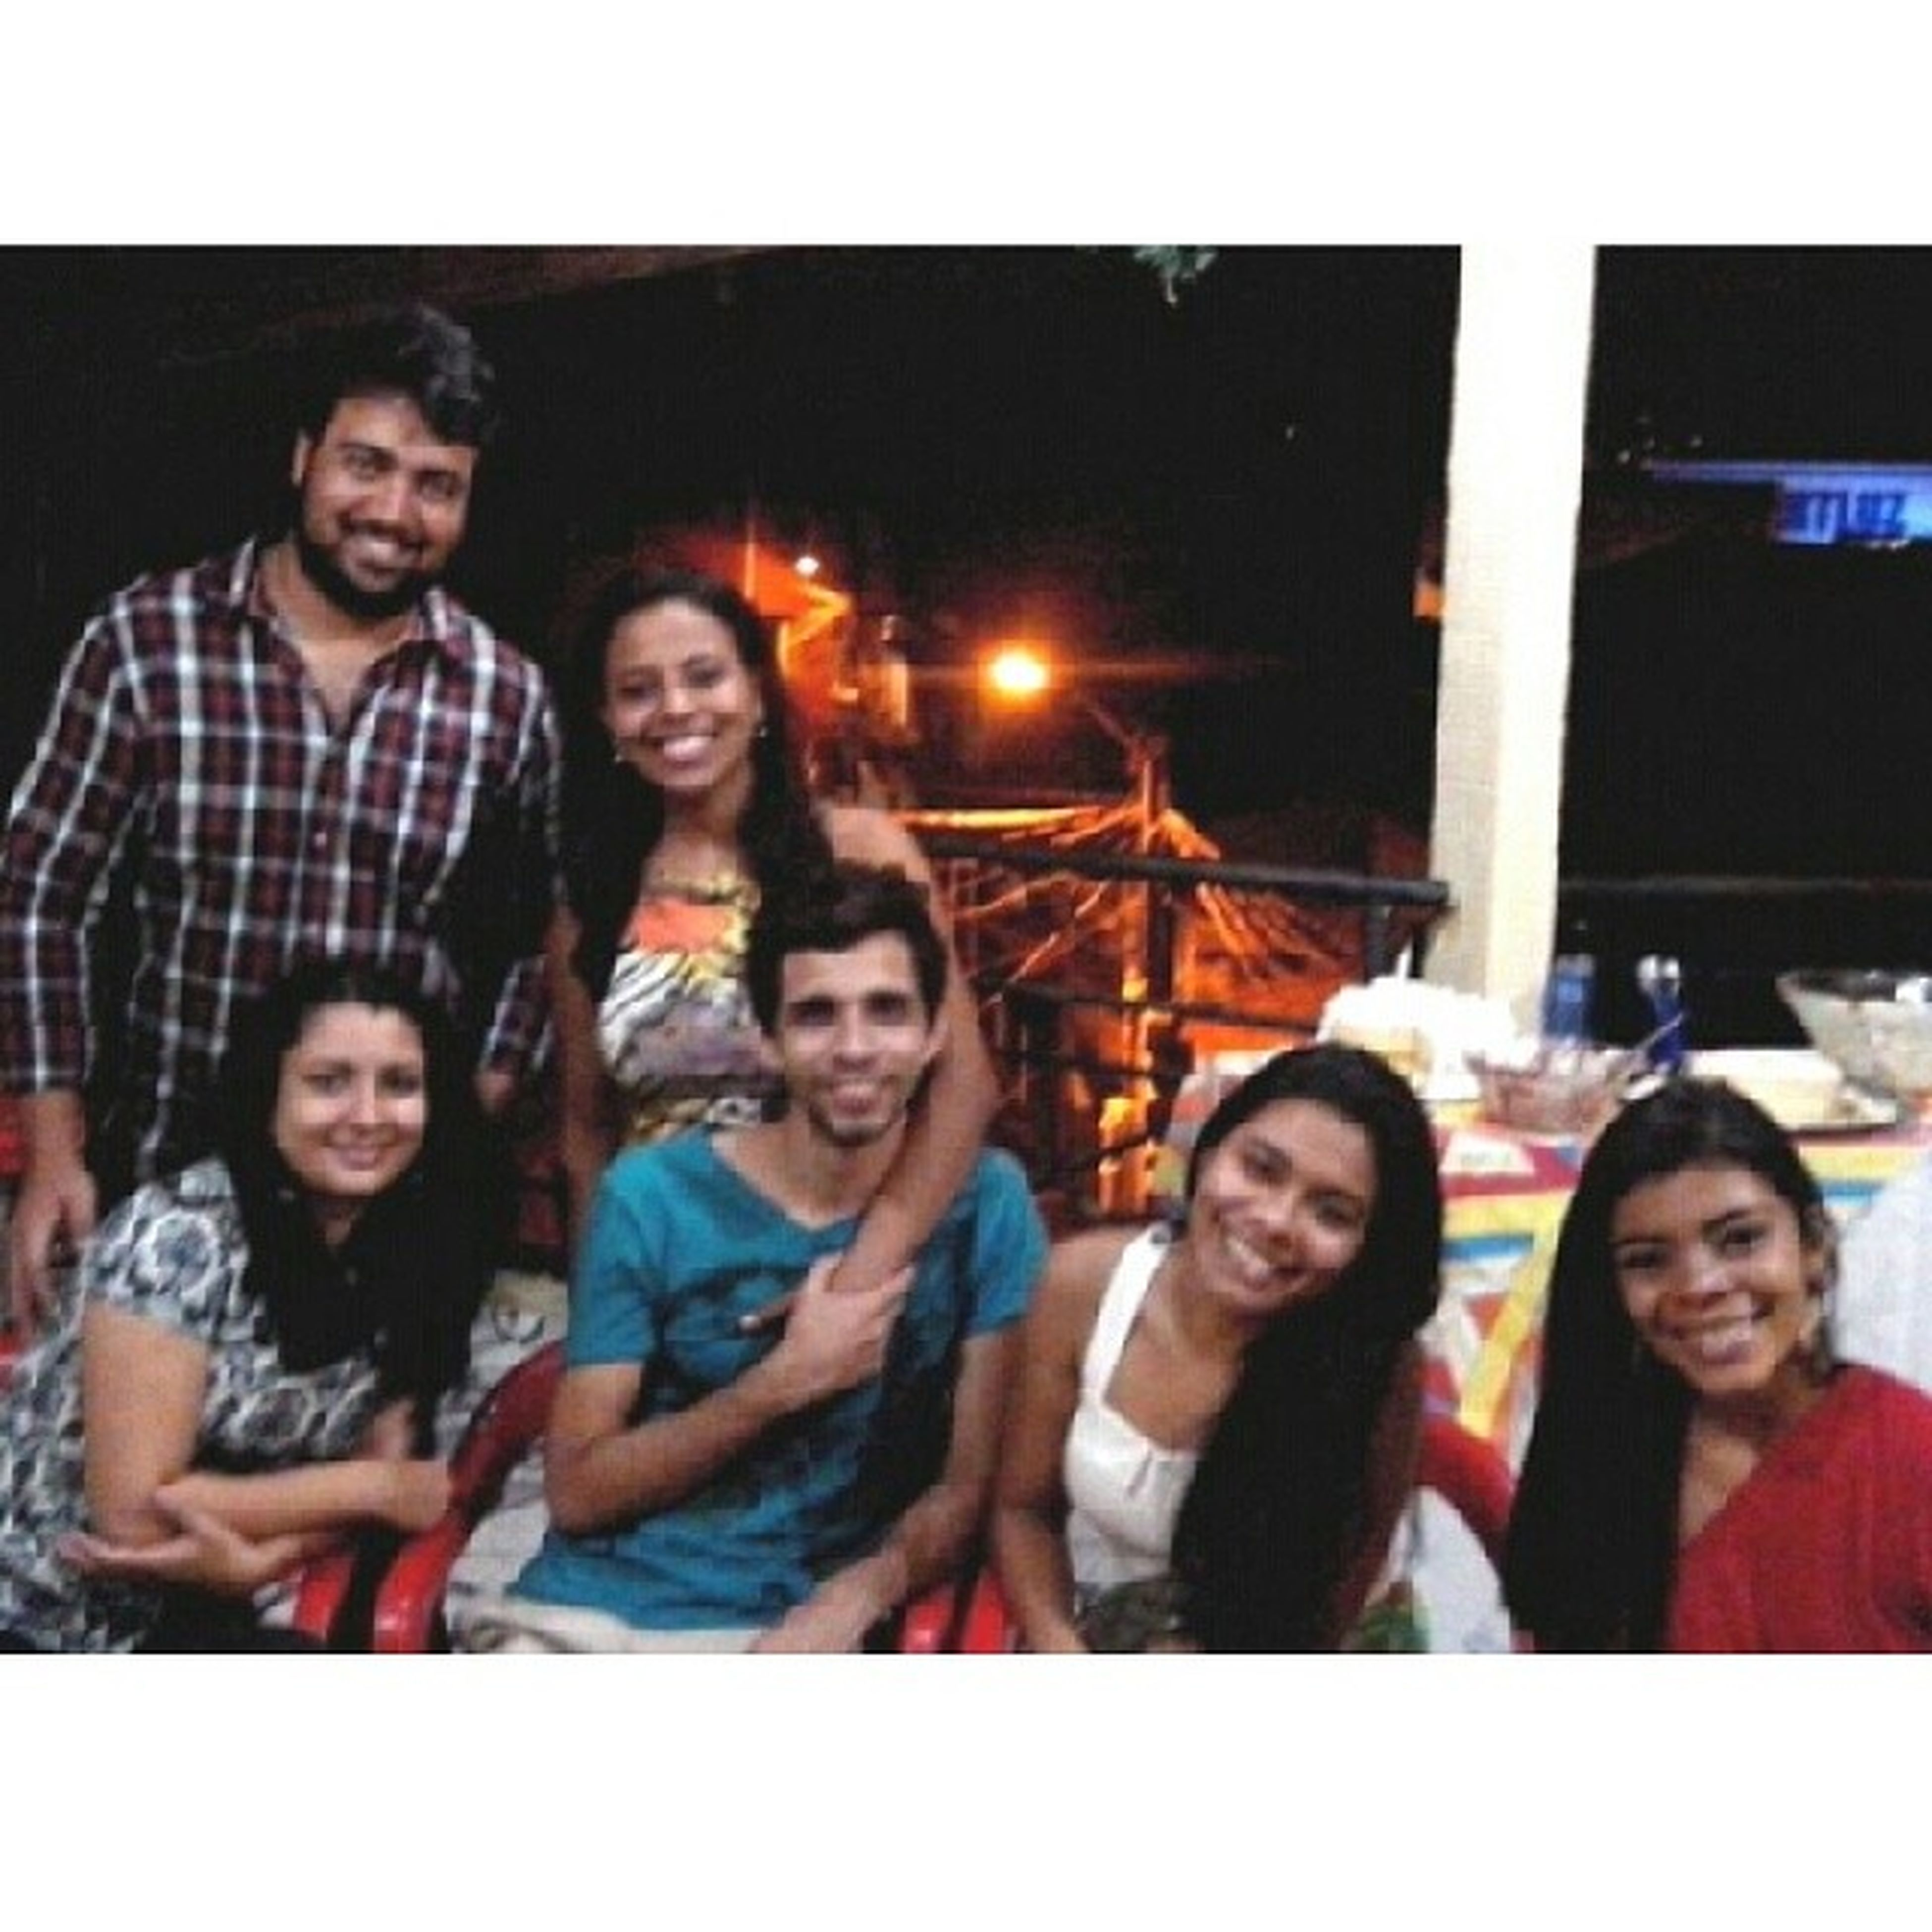 togetherness, bonding, lifestyles, happiness, person, leisure activity, portrait, looking at camera, smiling, love, young adult, friendship, front view, enjoyment, family, fun, sibling, young women